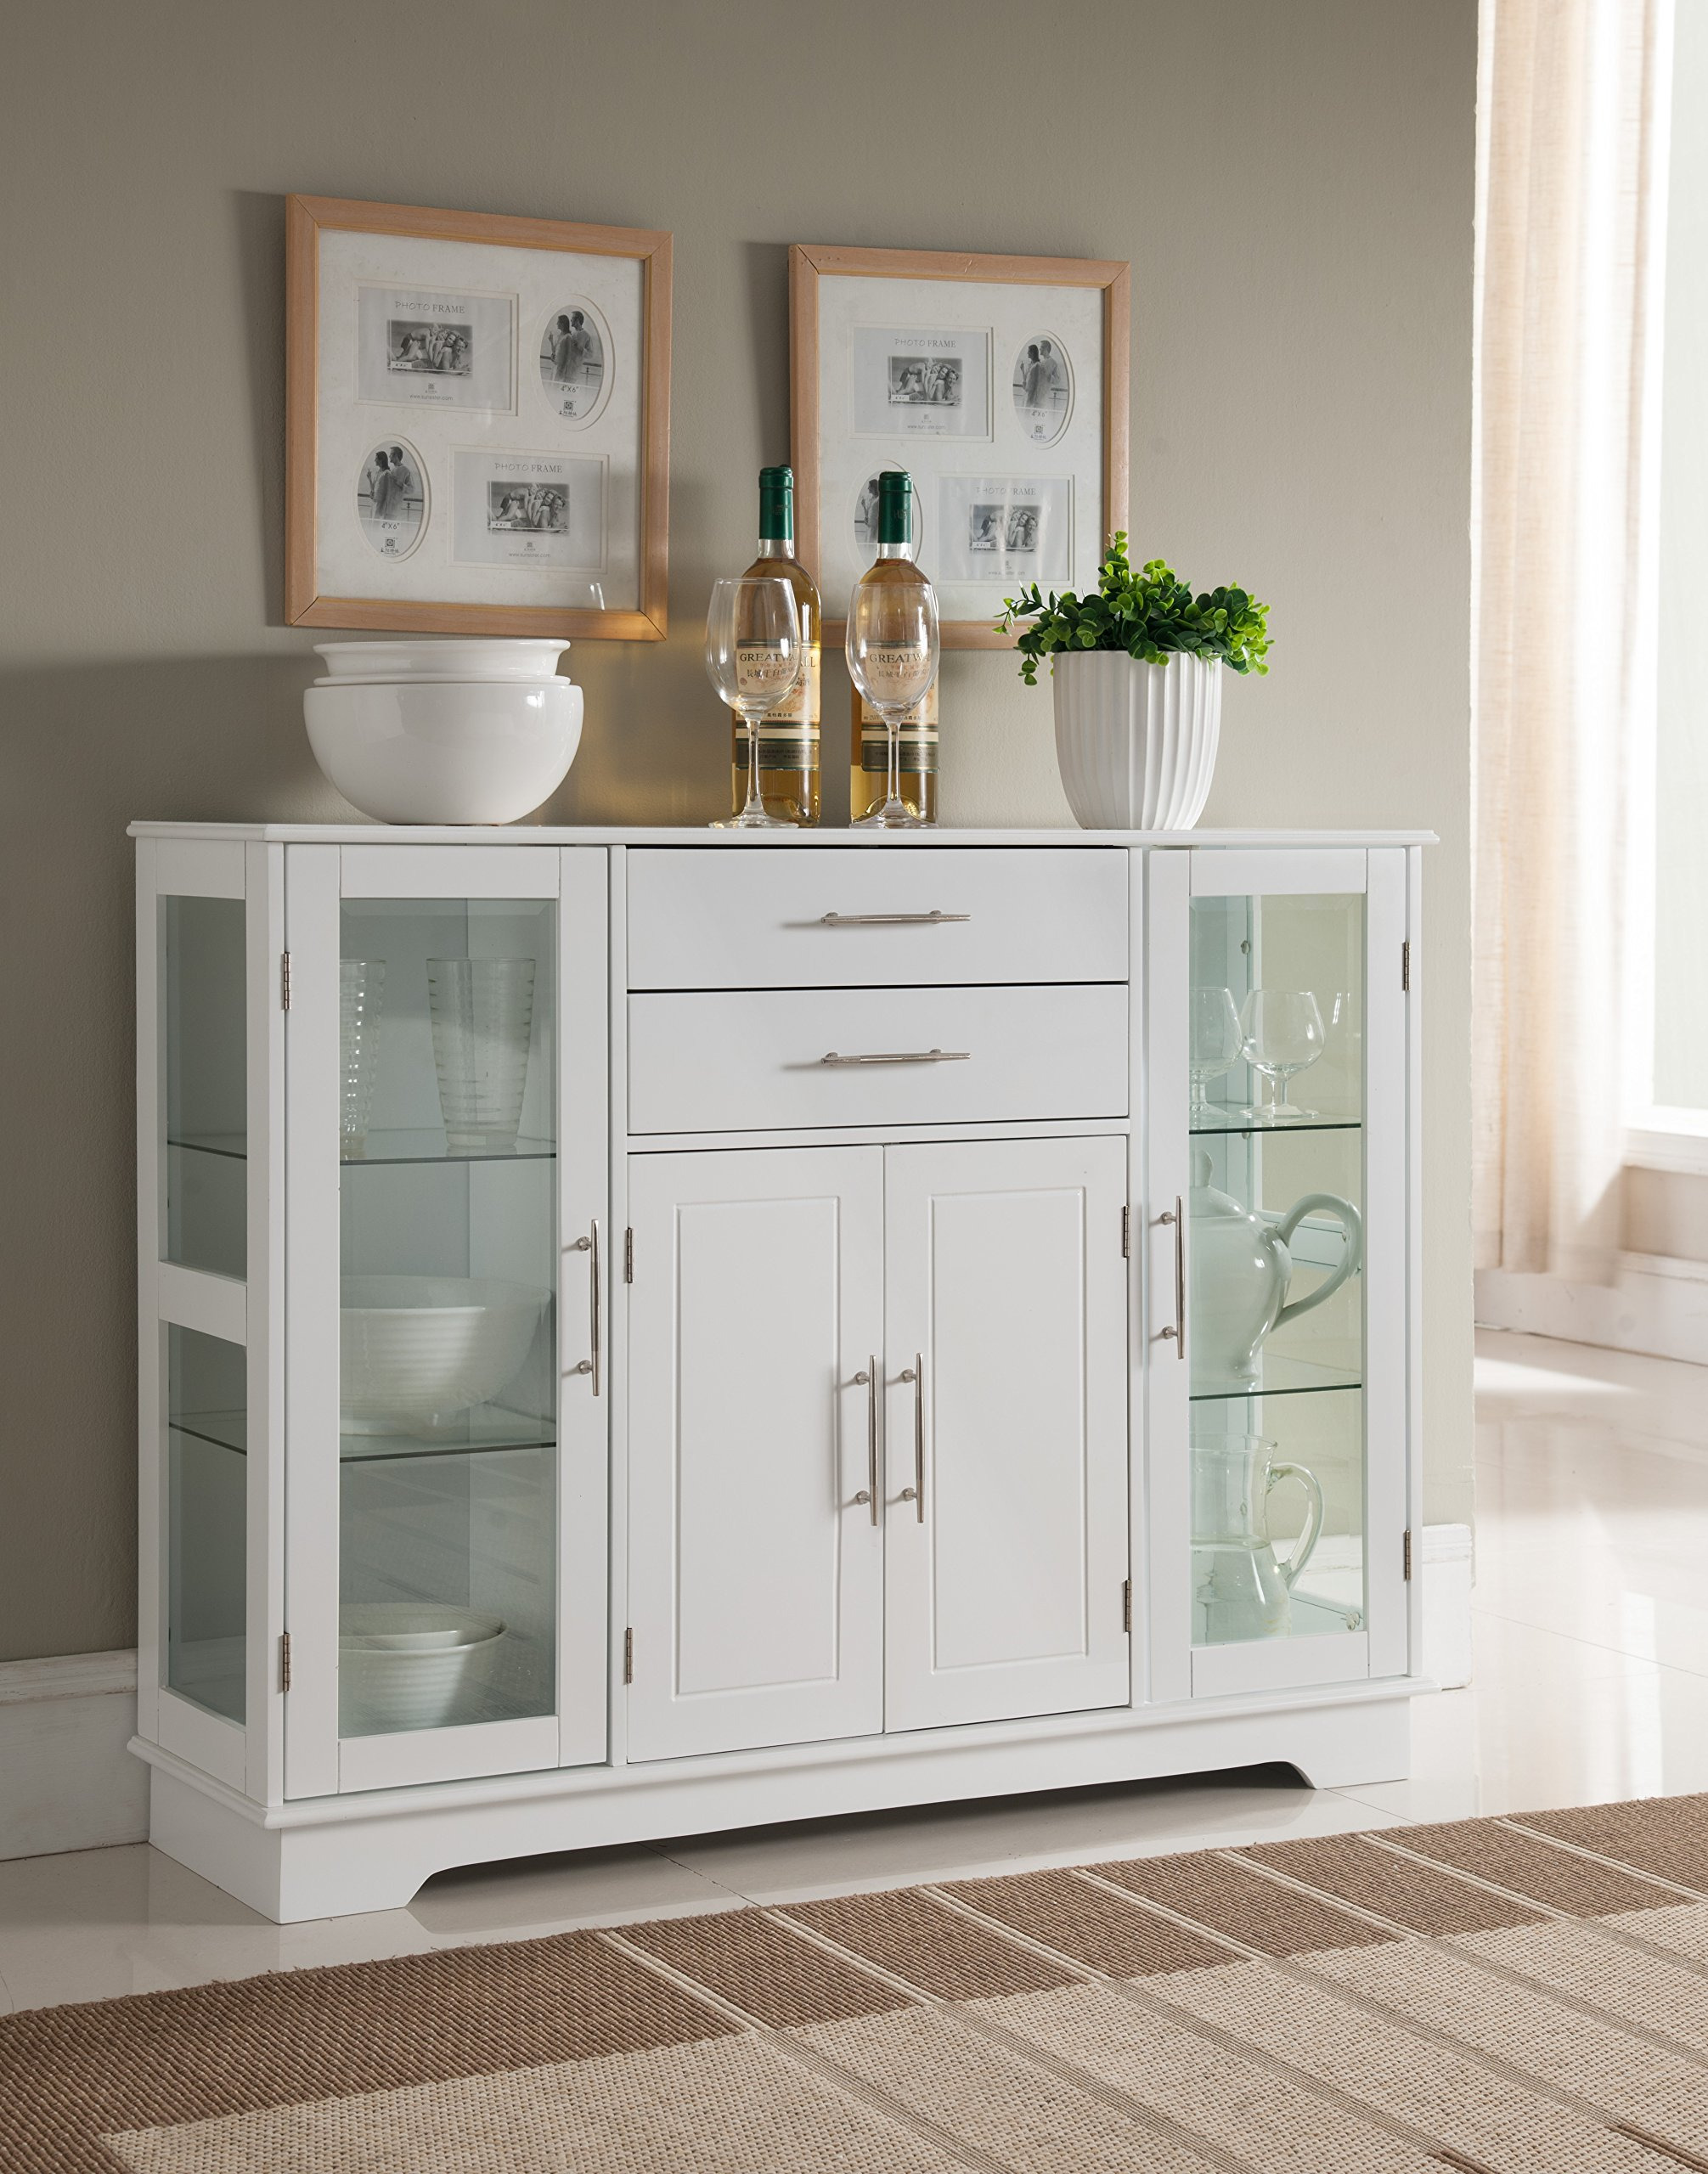 kings brand furniture vd hw kitchen storage cabinet buffet with glass doors white